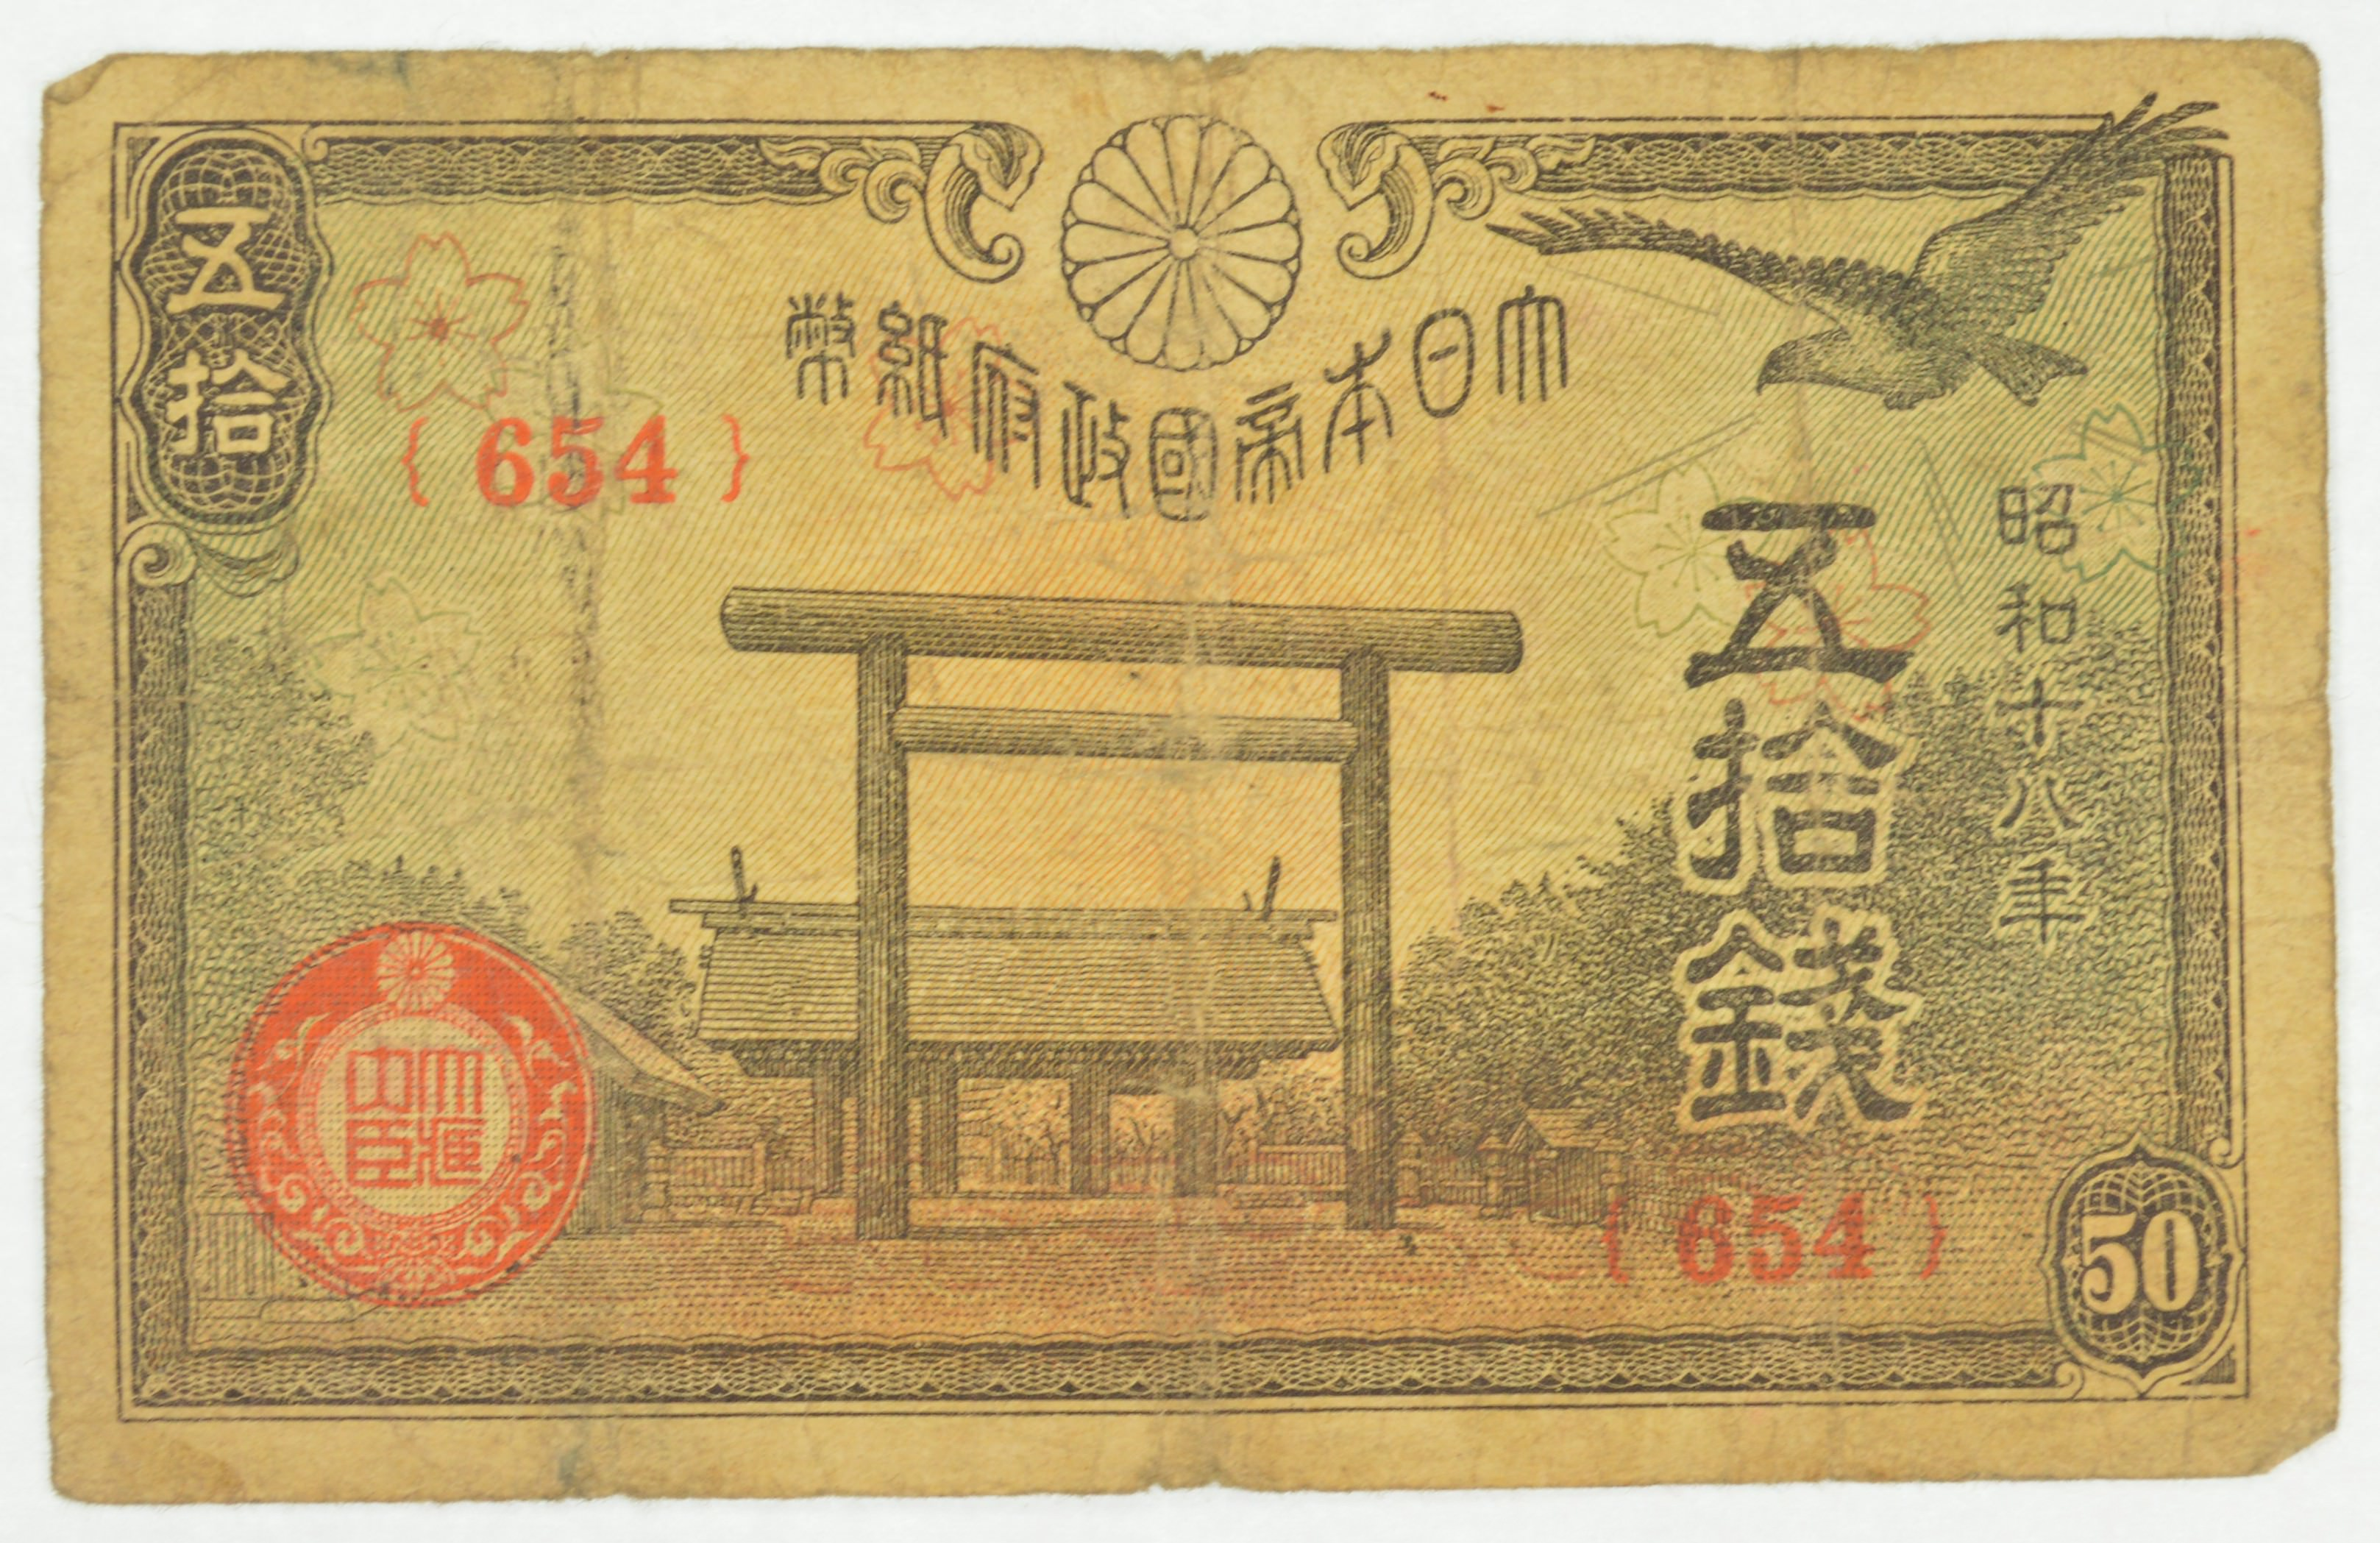 japan currency coins images